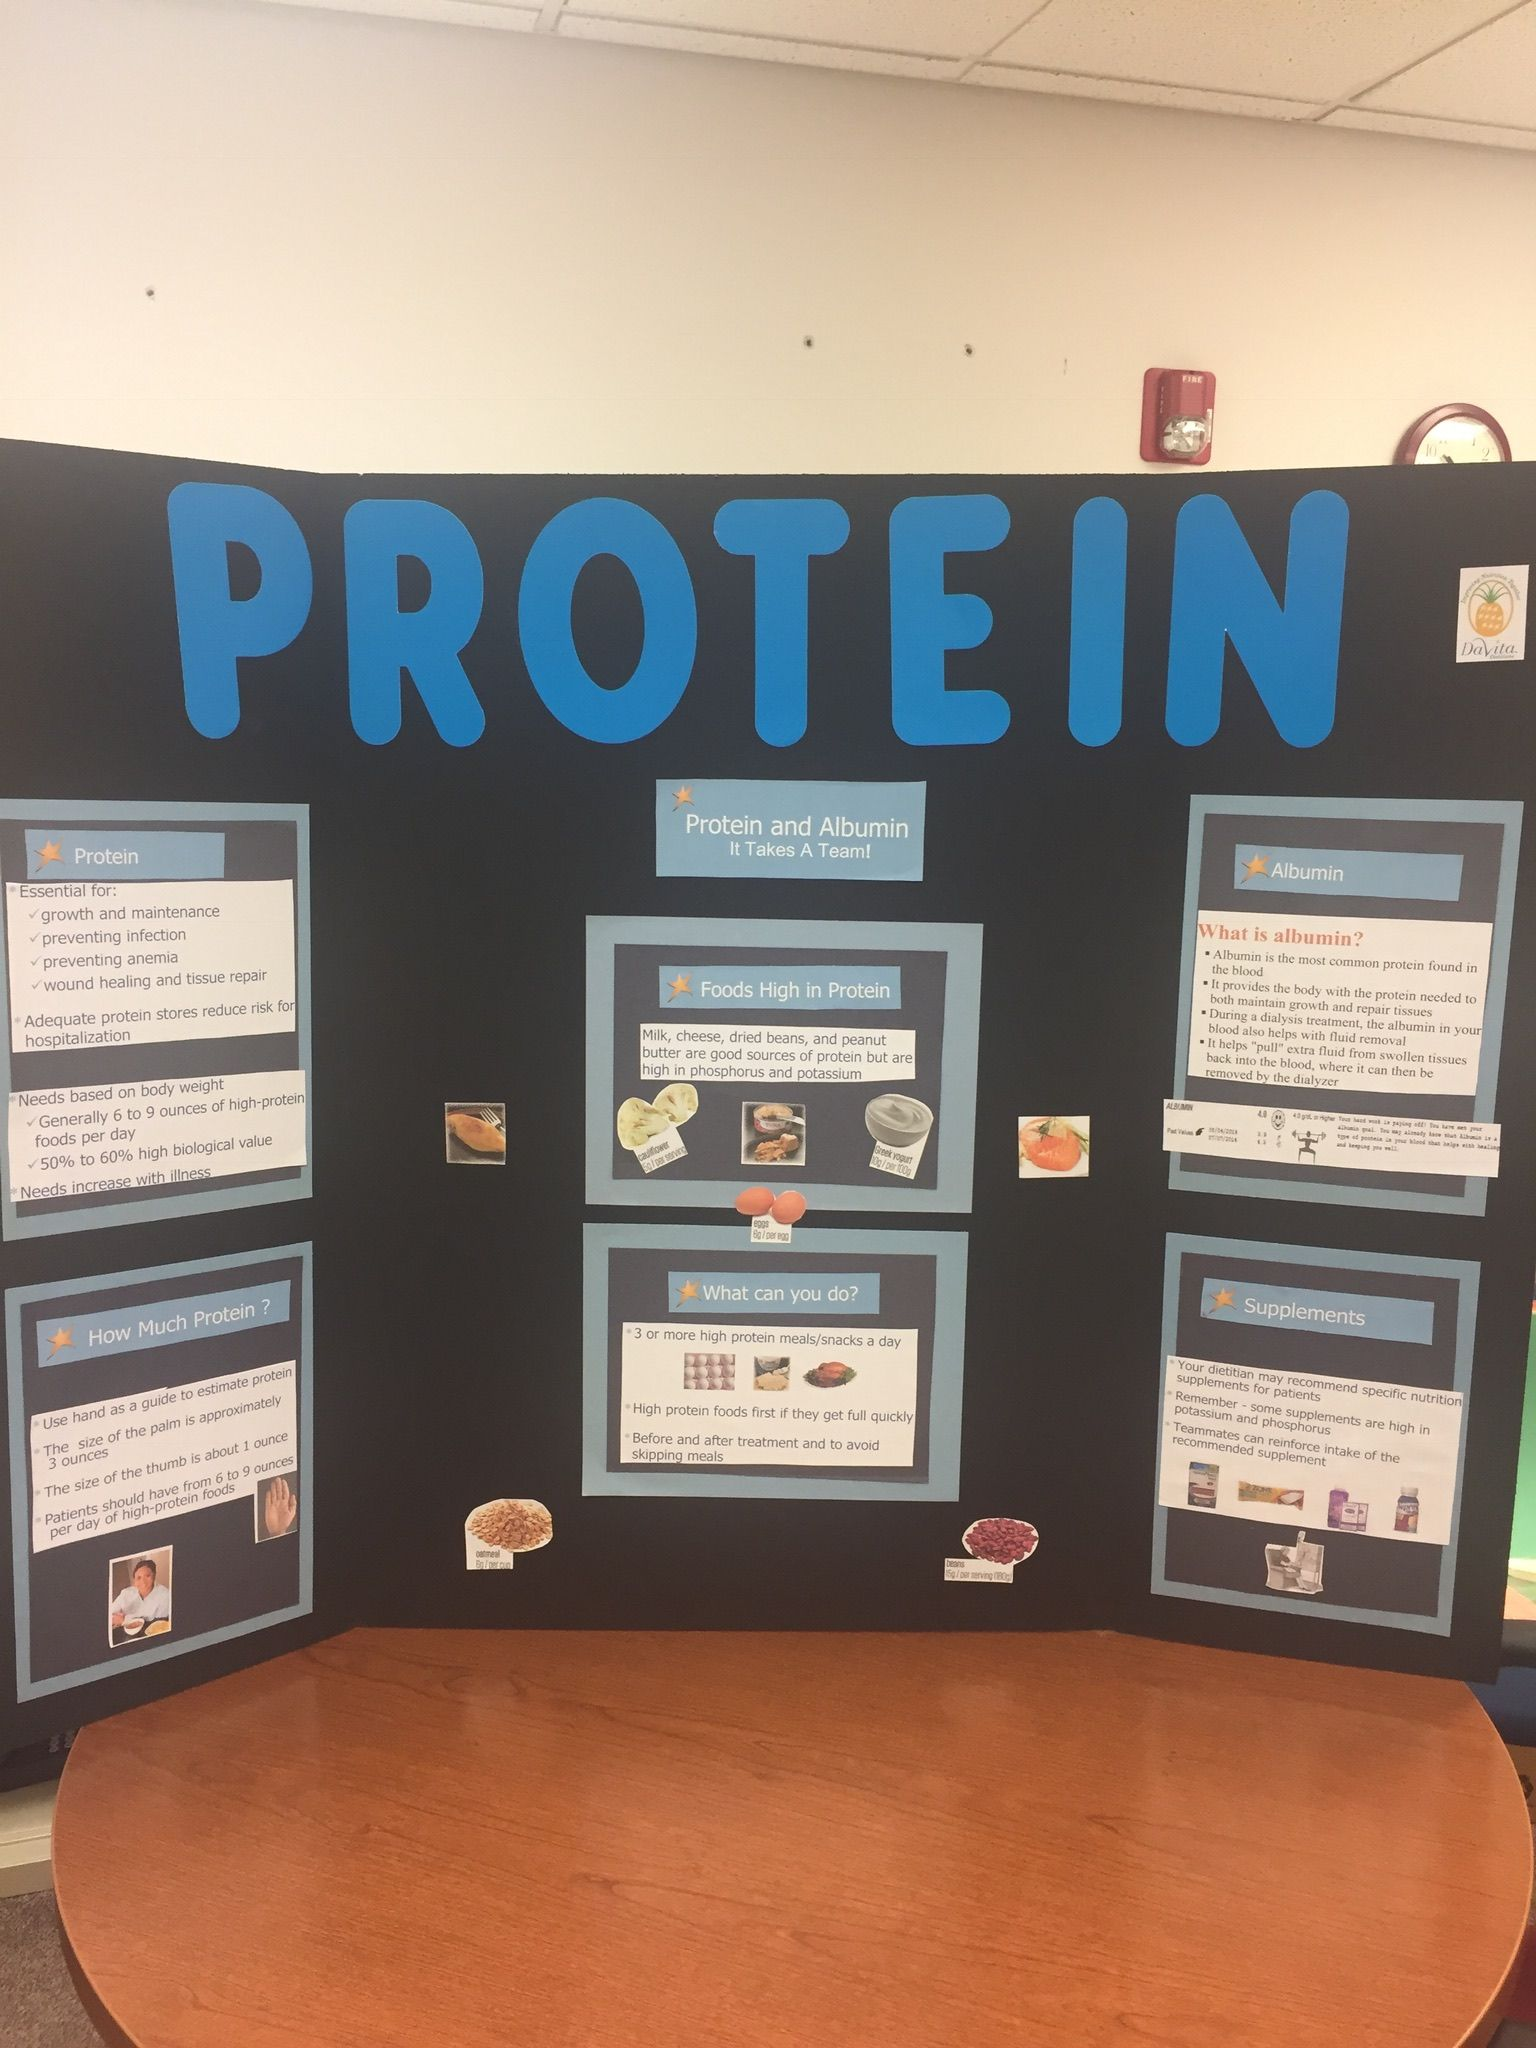 Protein and Albumin It takes a team! Presentation board